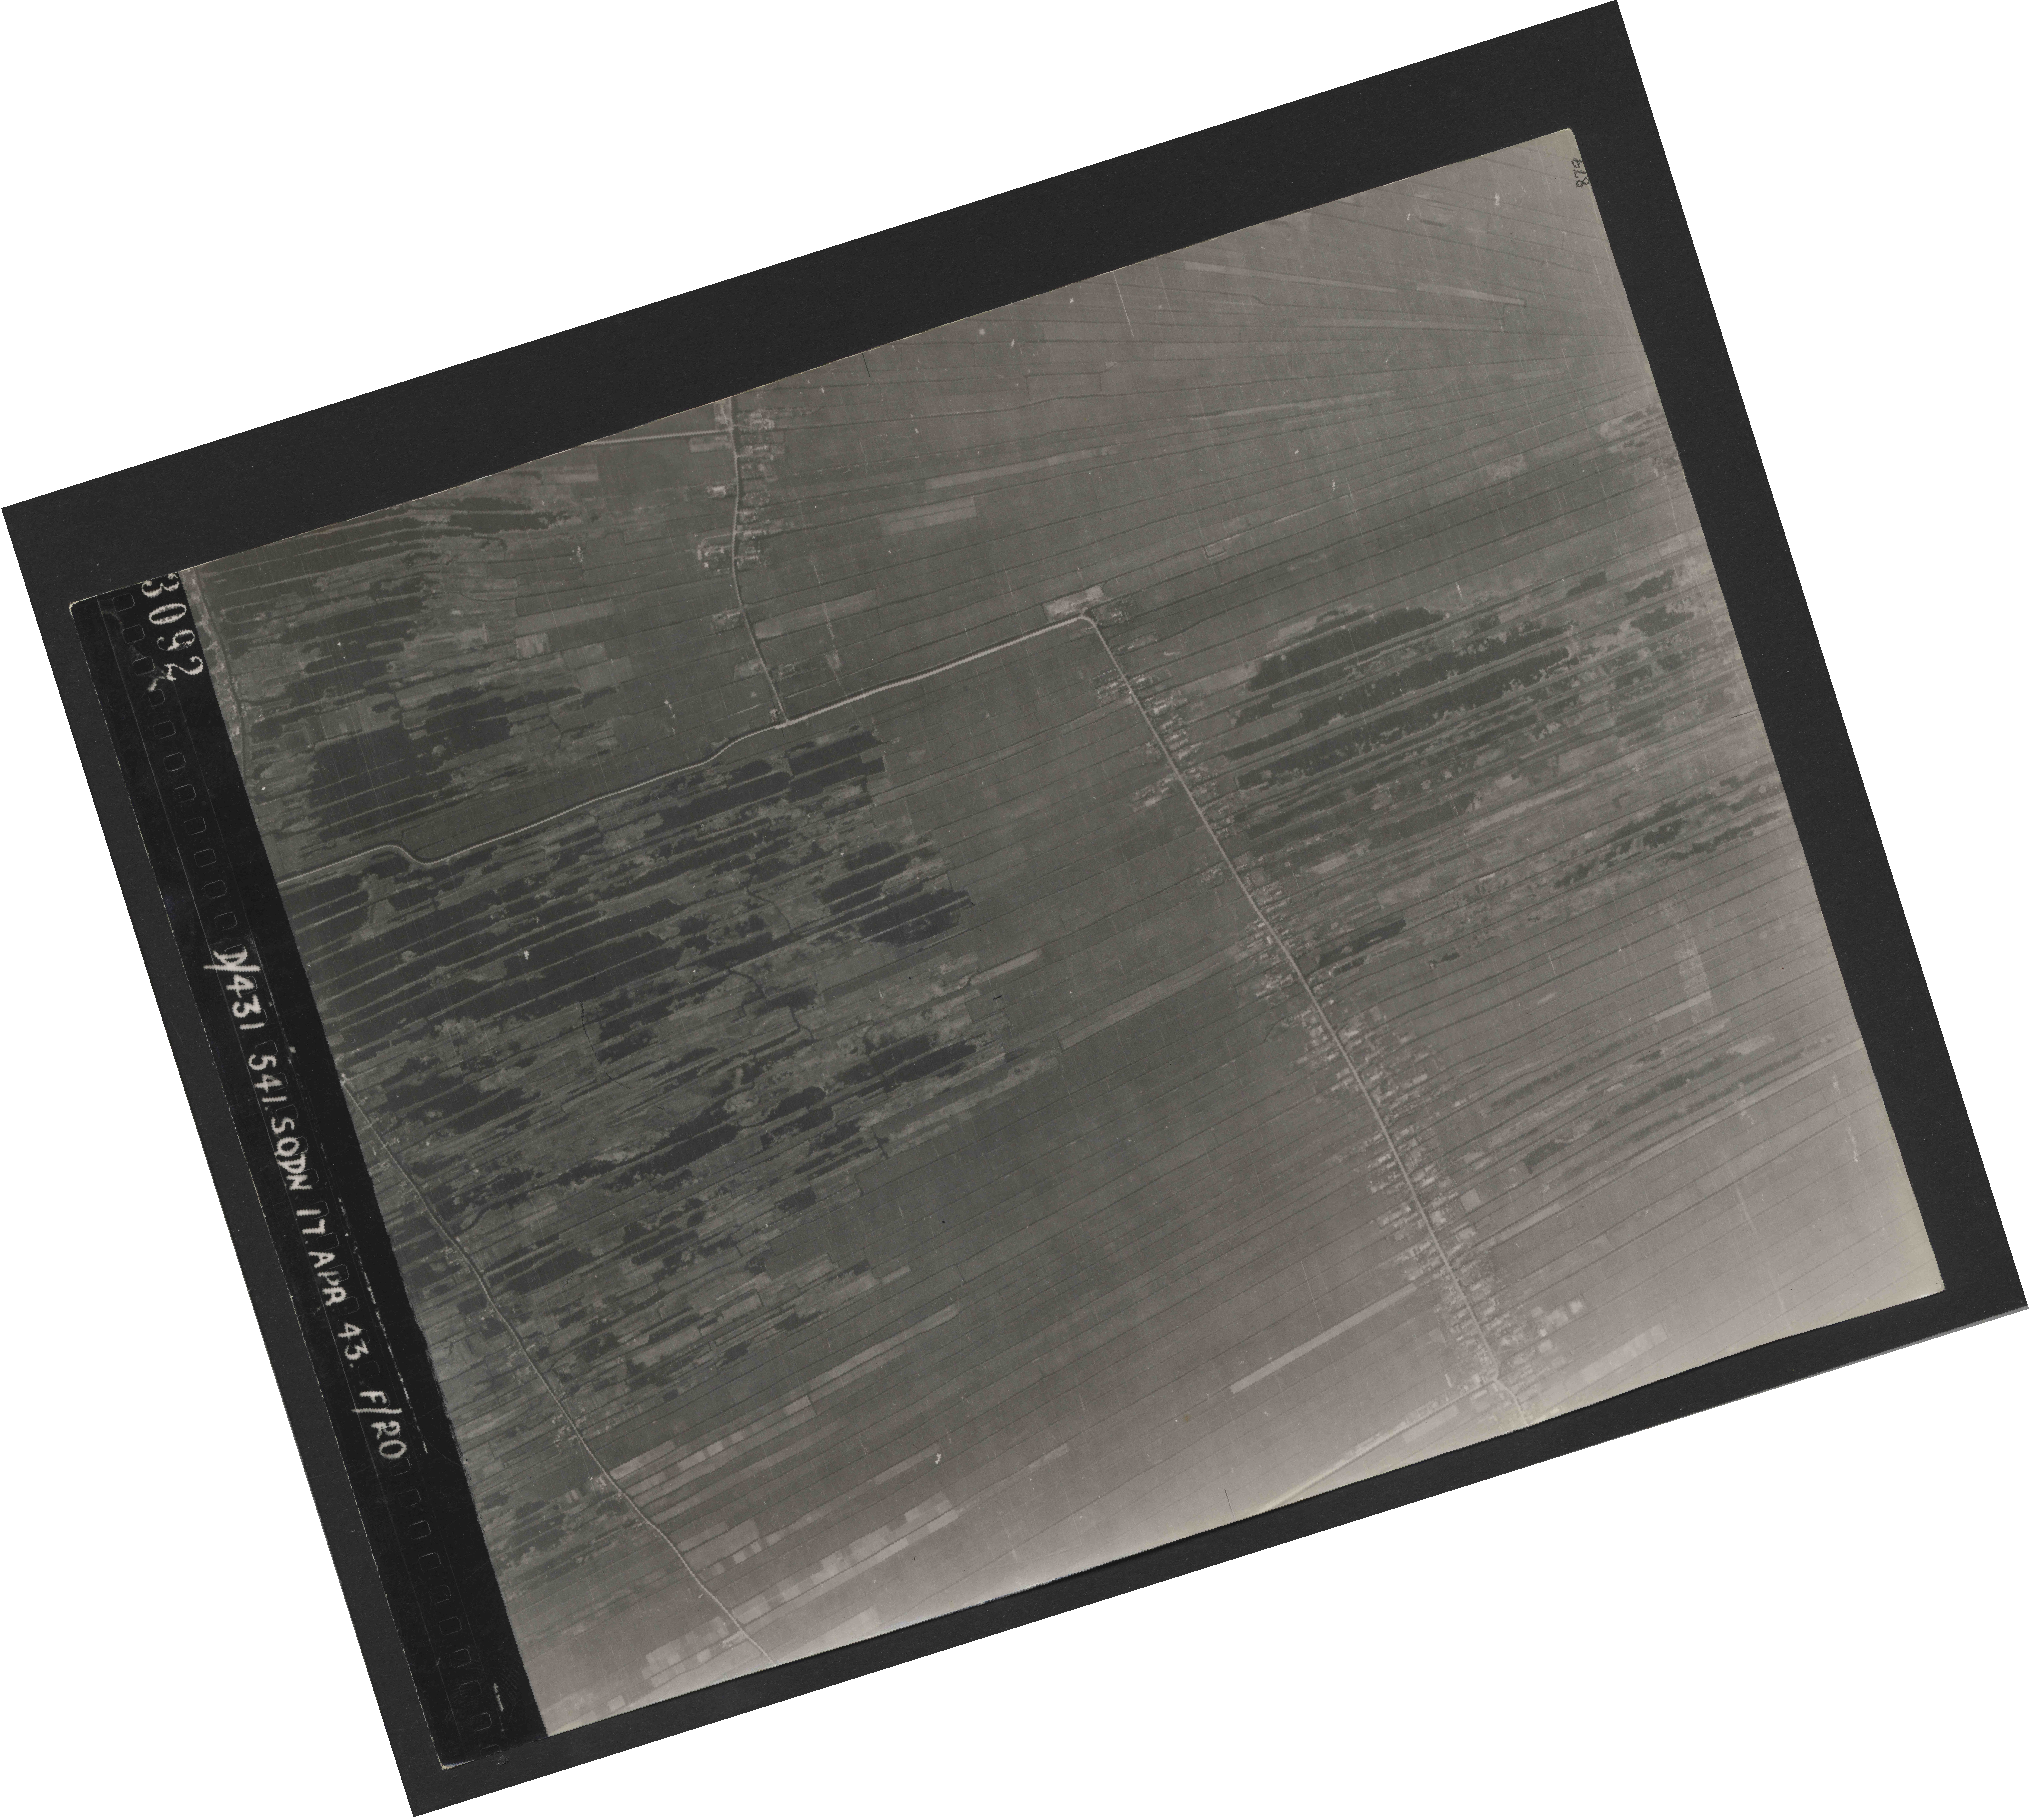 Collection RAF aerial photos 1940-1945 - flight 329, run 02, photo 3092